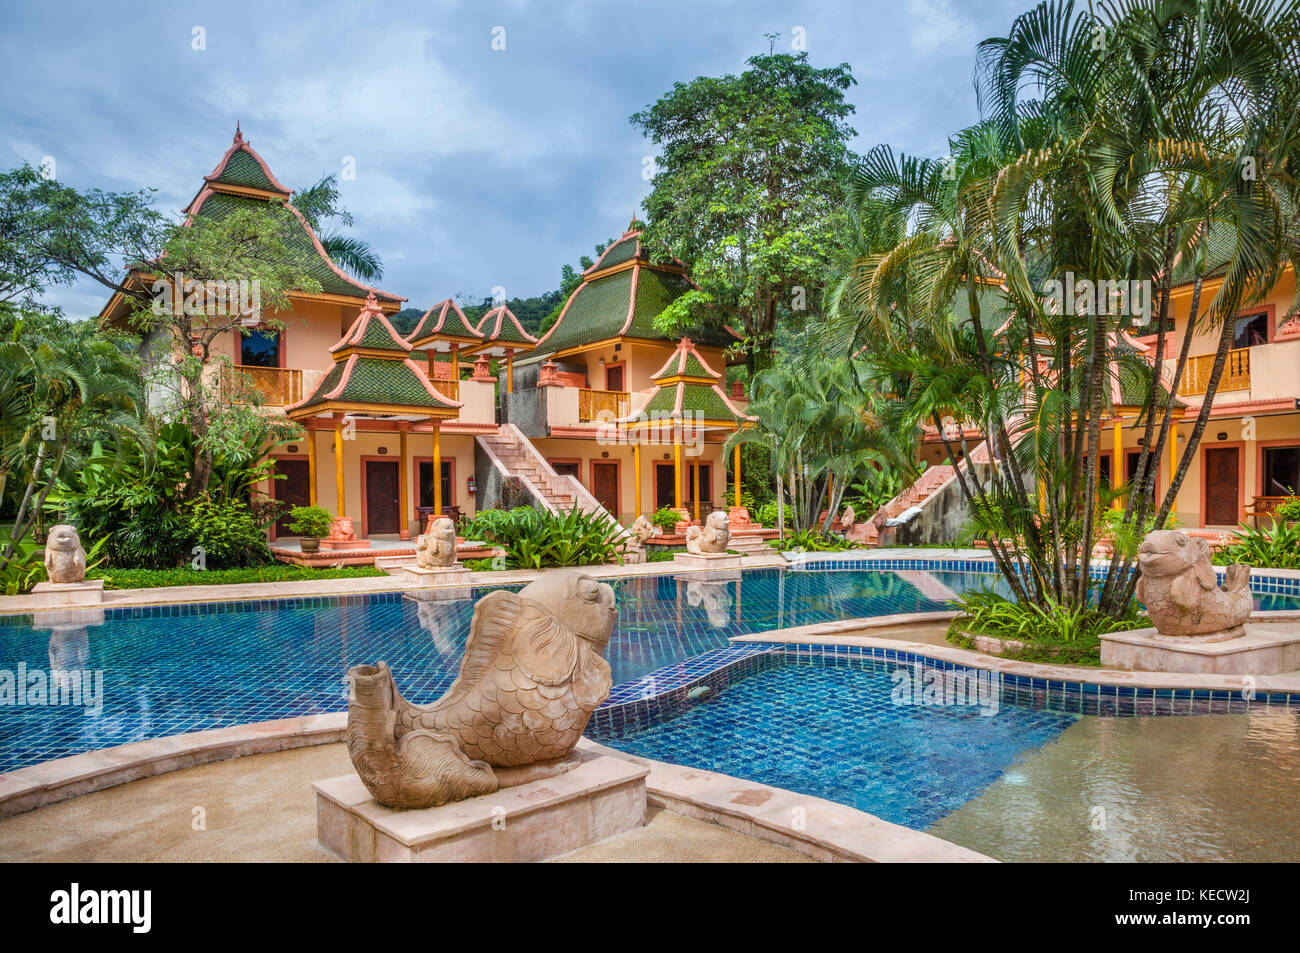 Thailand, Trat Province, Koh Chang Island in the Gulf of Thailand, Ao Klong Phrao Beach, pool of the Coconut Beach - Stock Image